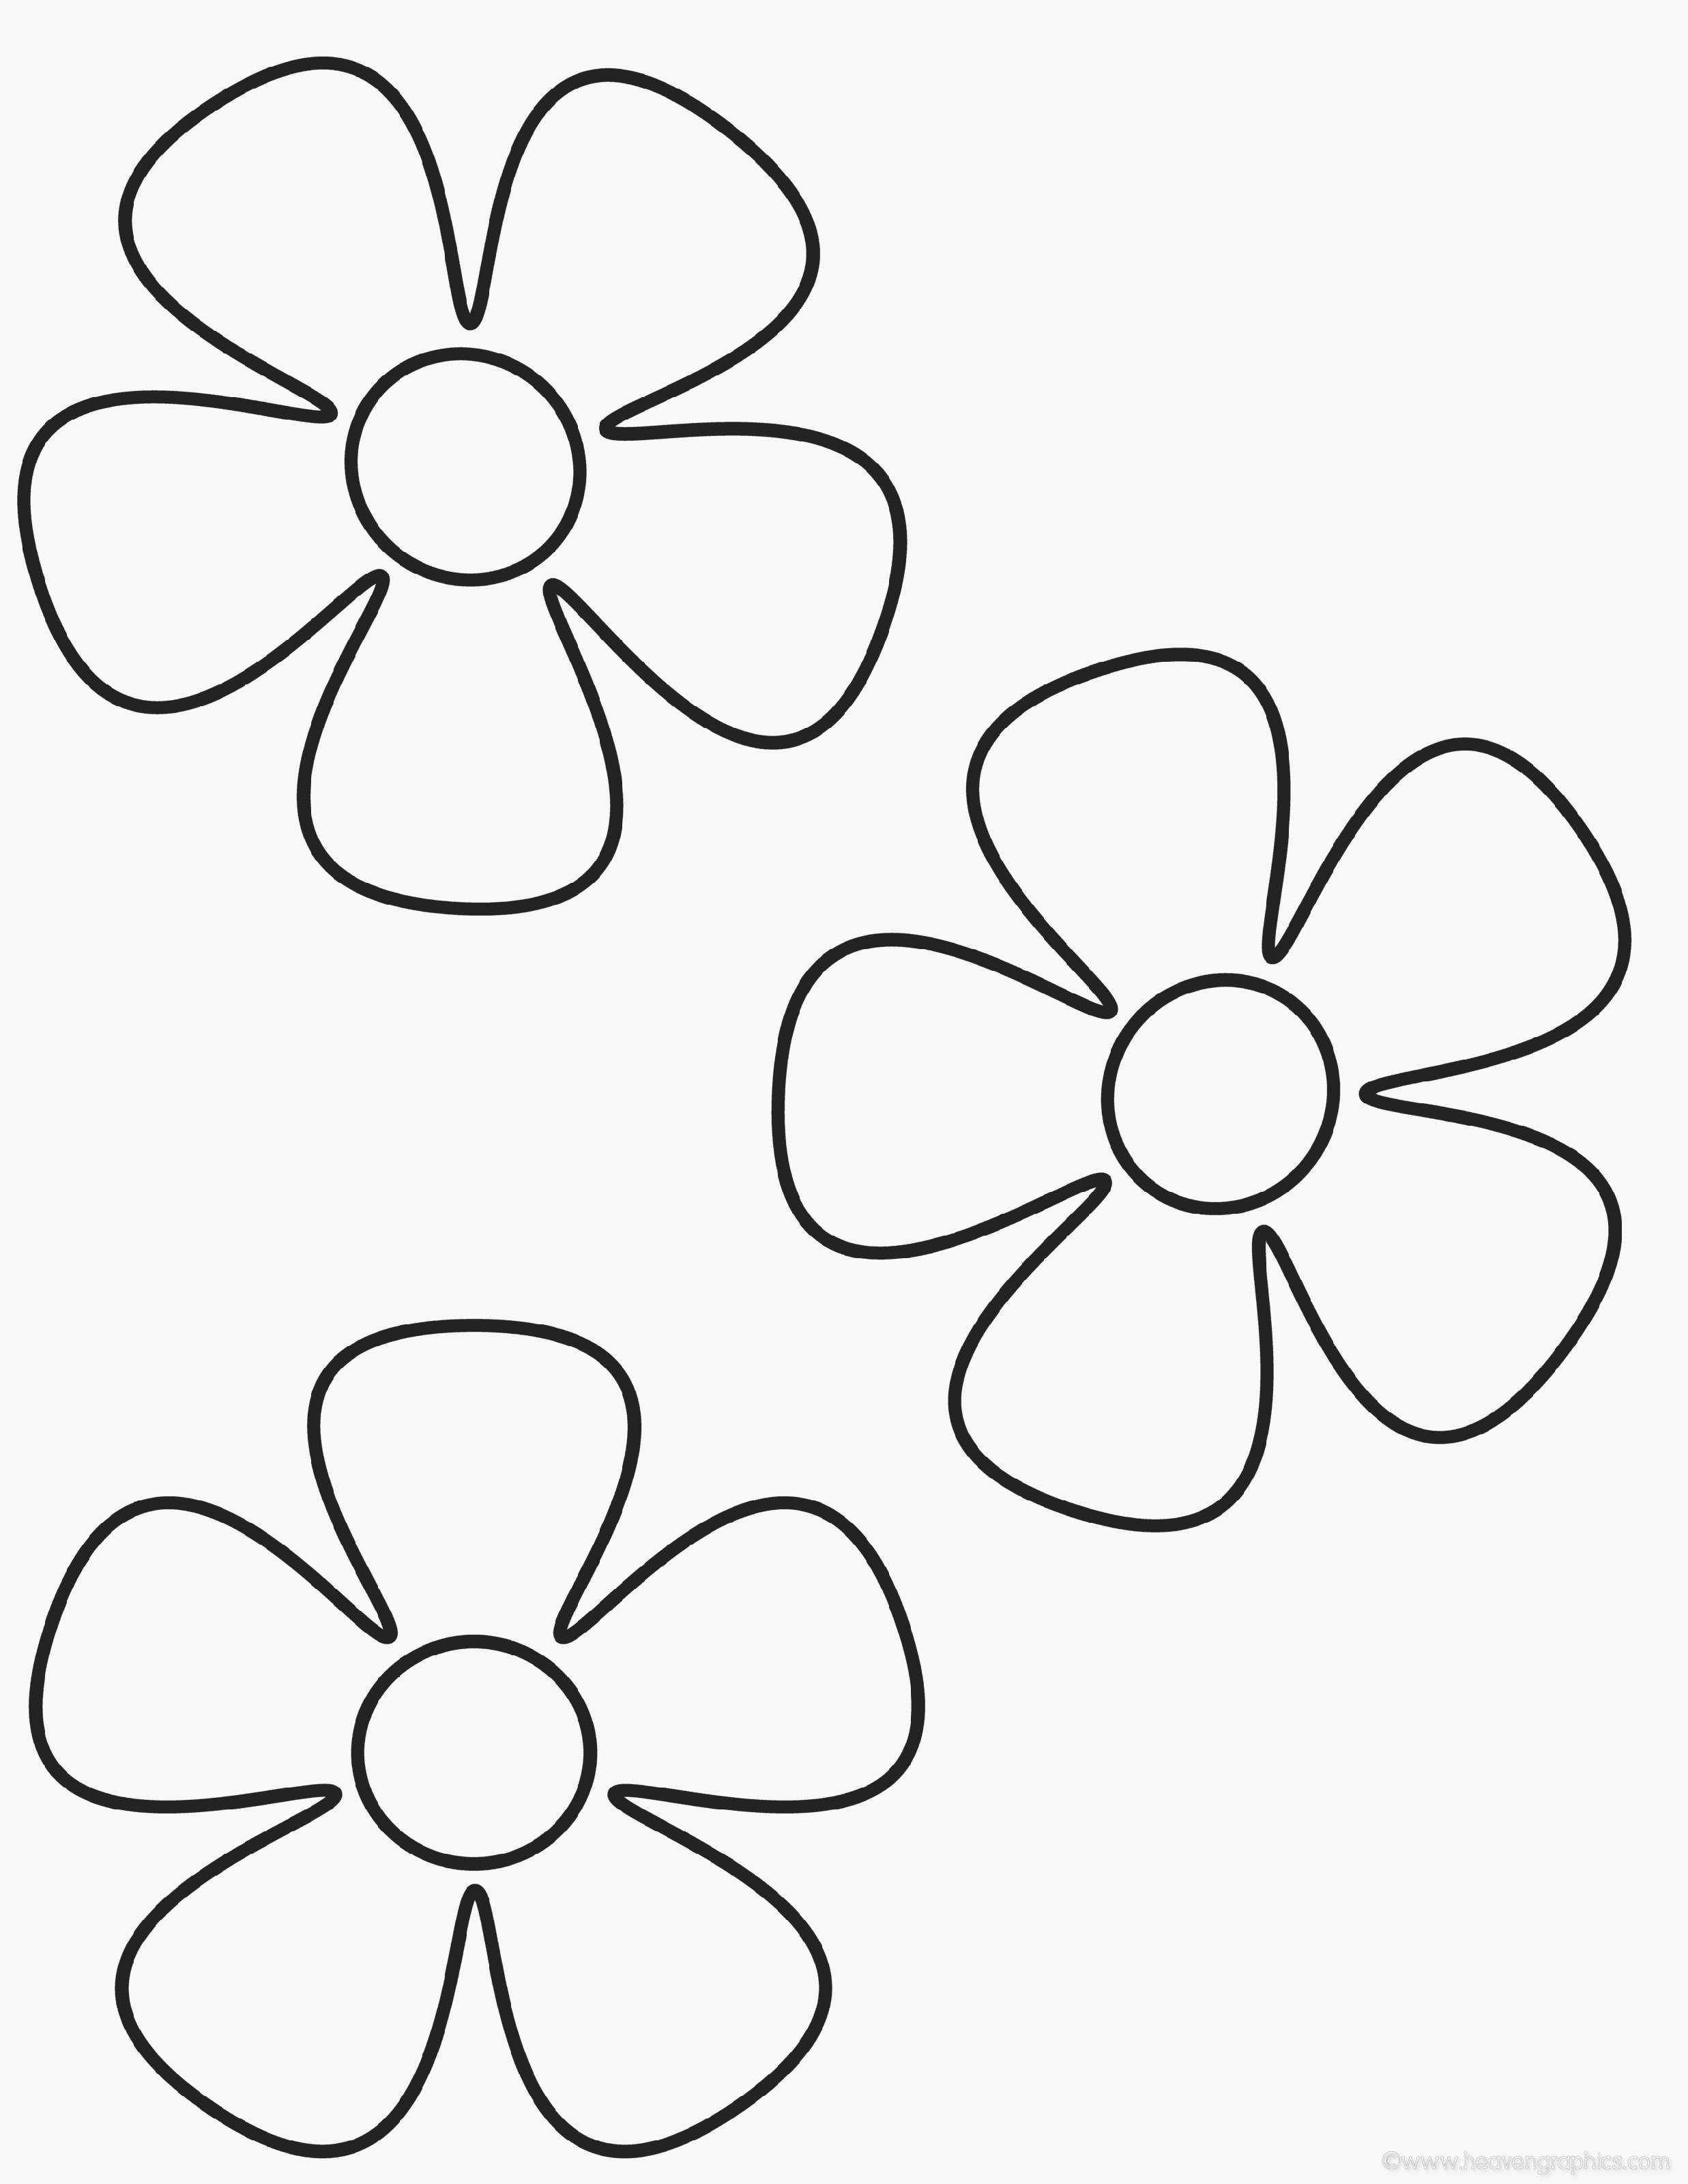 Daisy Flower Coloring Page Free Printable - Sea4Waterman | Paper ...